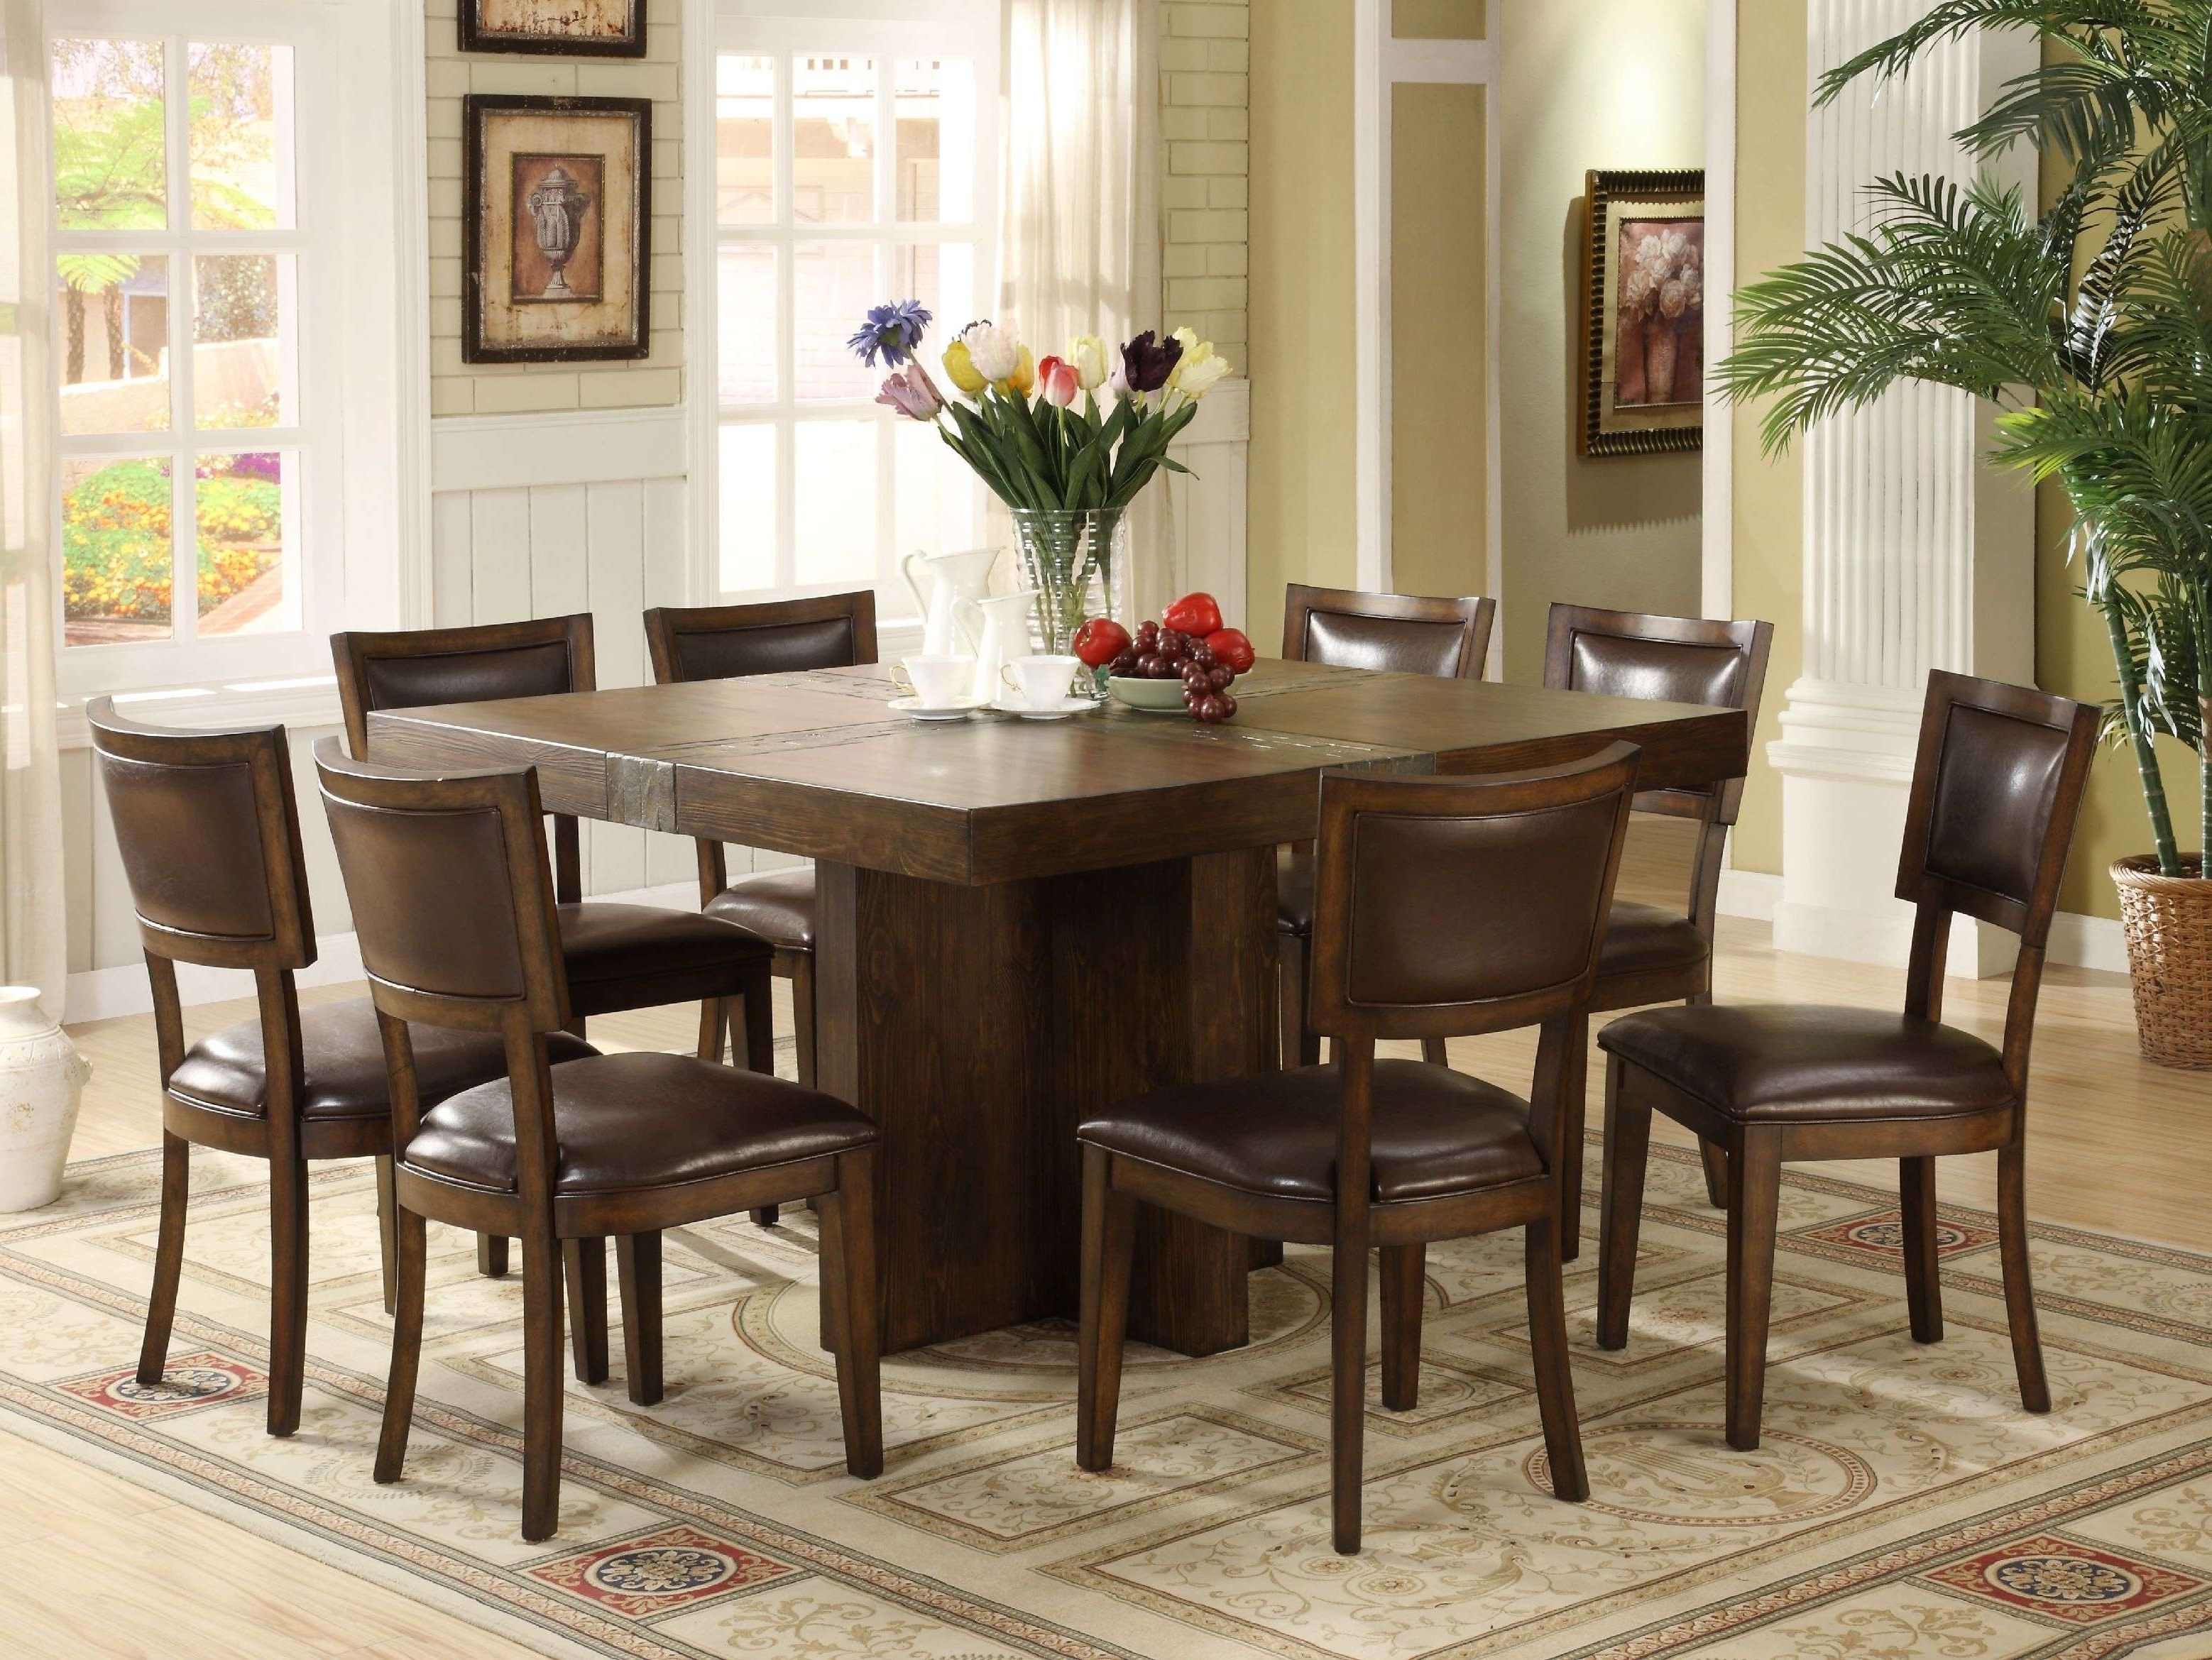 Trendy 8 Seater Dining Table Sets Regarding 10 Seater Dining Table And Chairs Beautiful Best 8 Seater Dining (View 23 of 25)